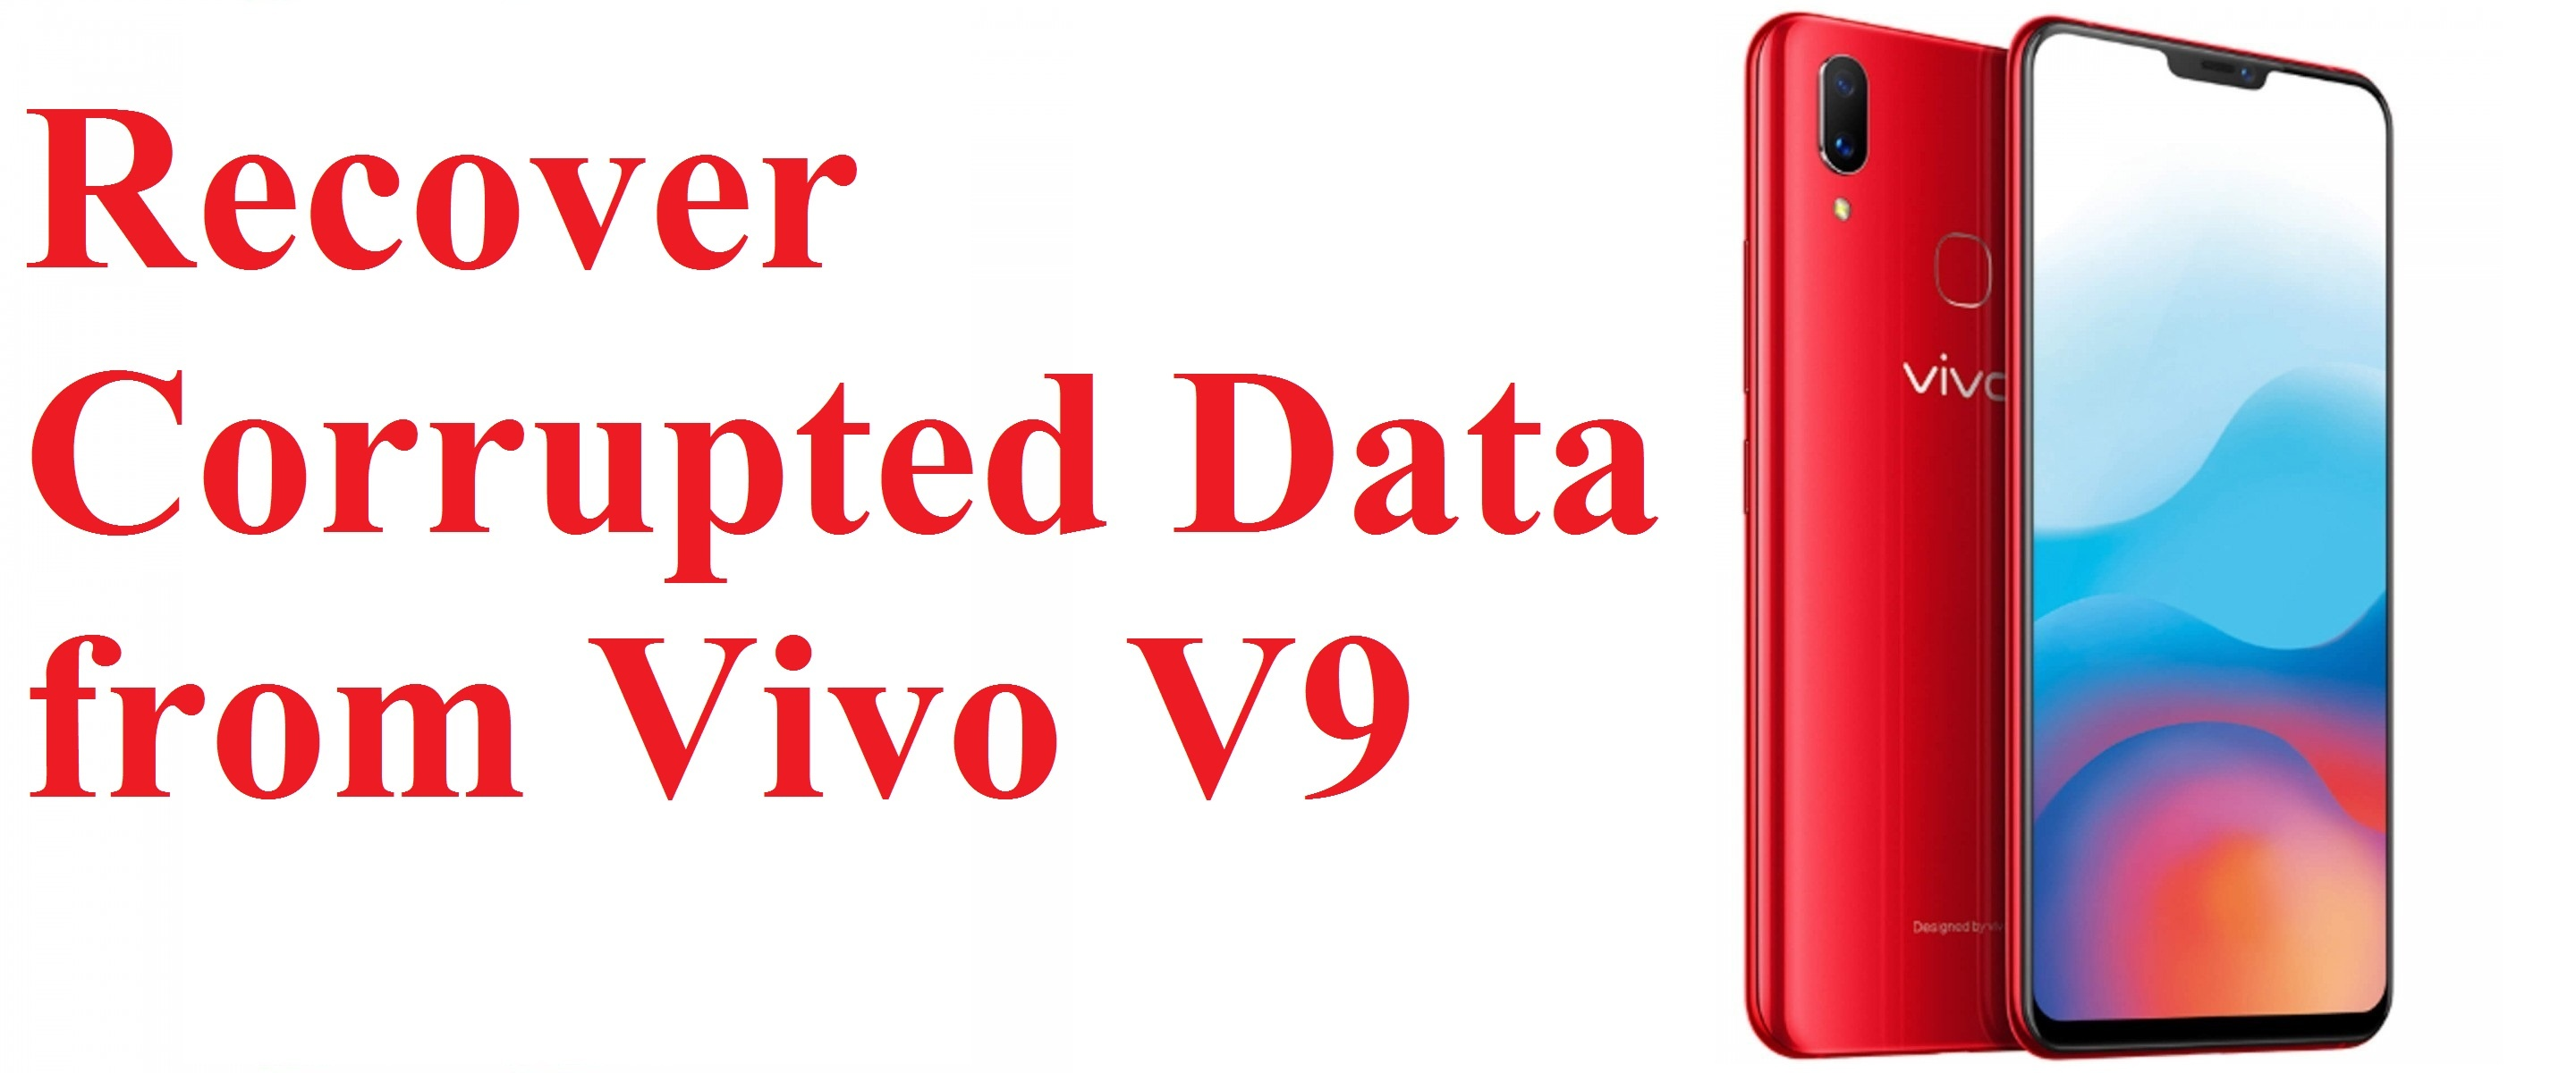 Best guide to recover corrupted data from Vivo V9 phone